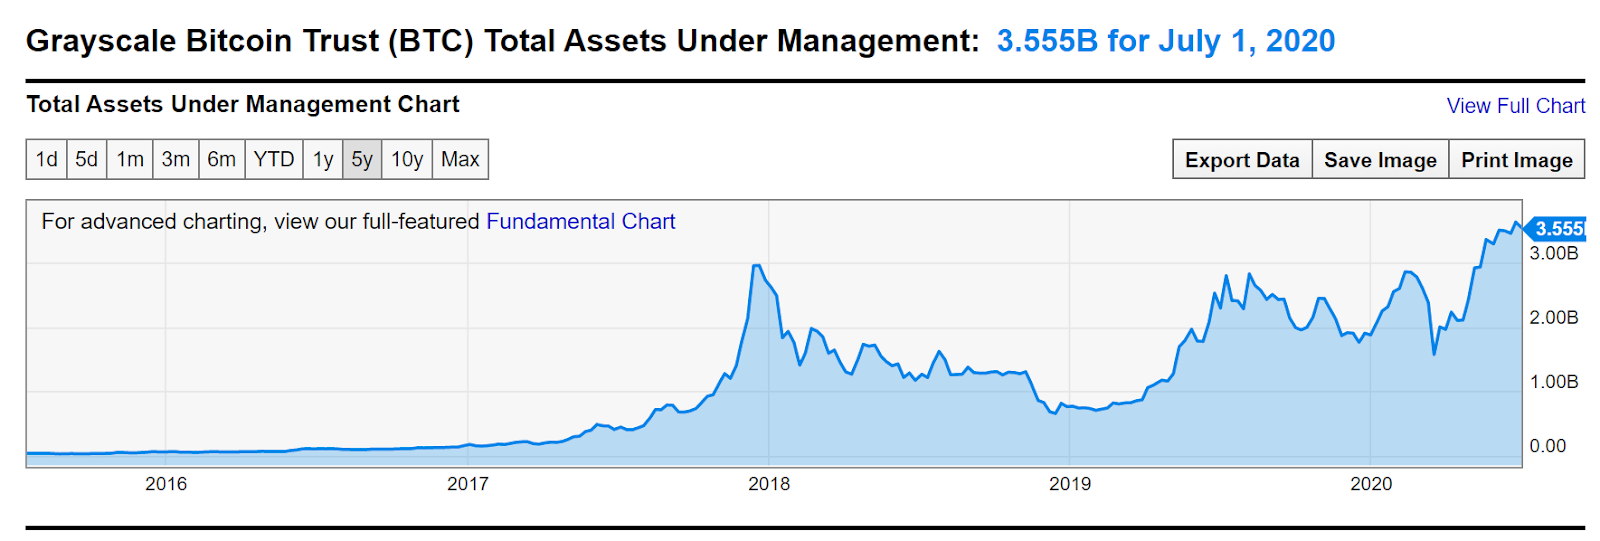 The managed Grayscale Bitcoin Trust assets